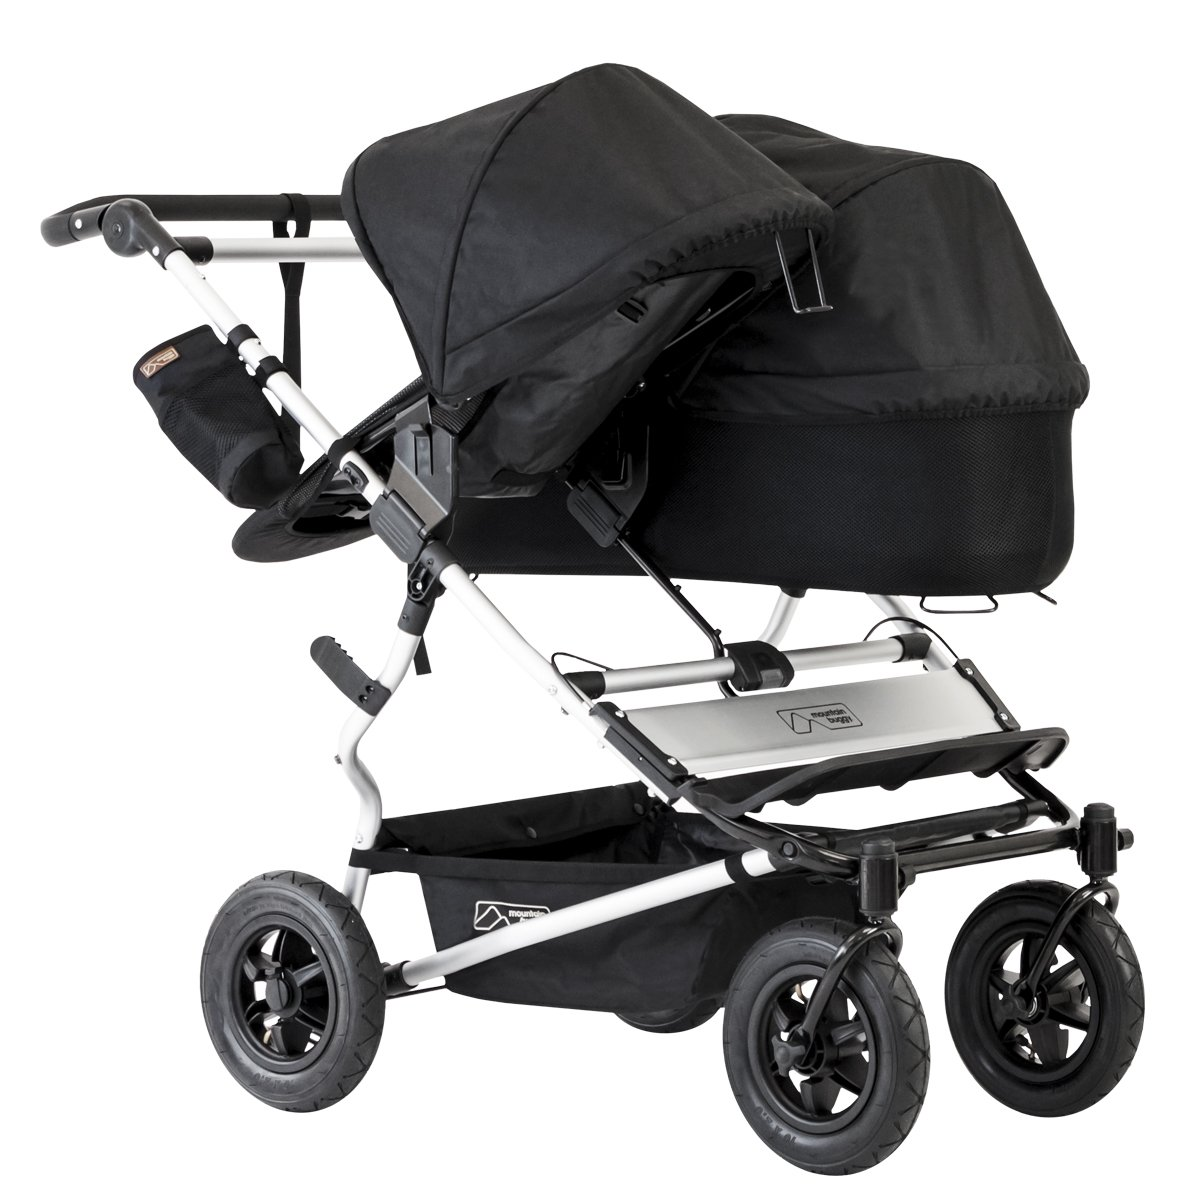 Mountain Buggy Duet 2016 Double Stroller, Black by Mountain Buggy (Image #8)